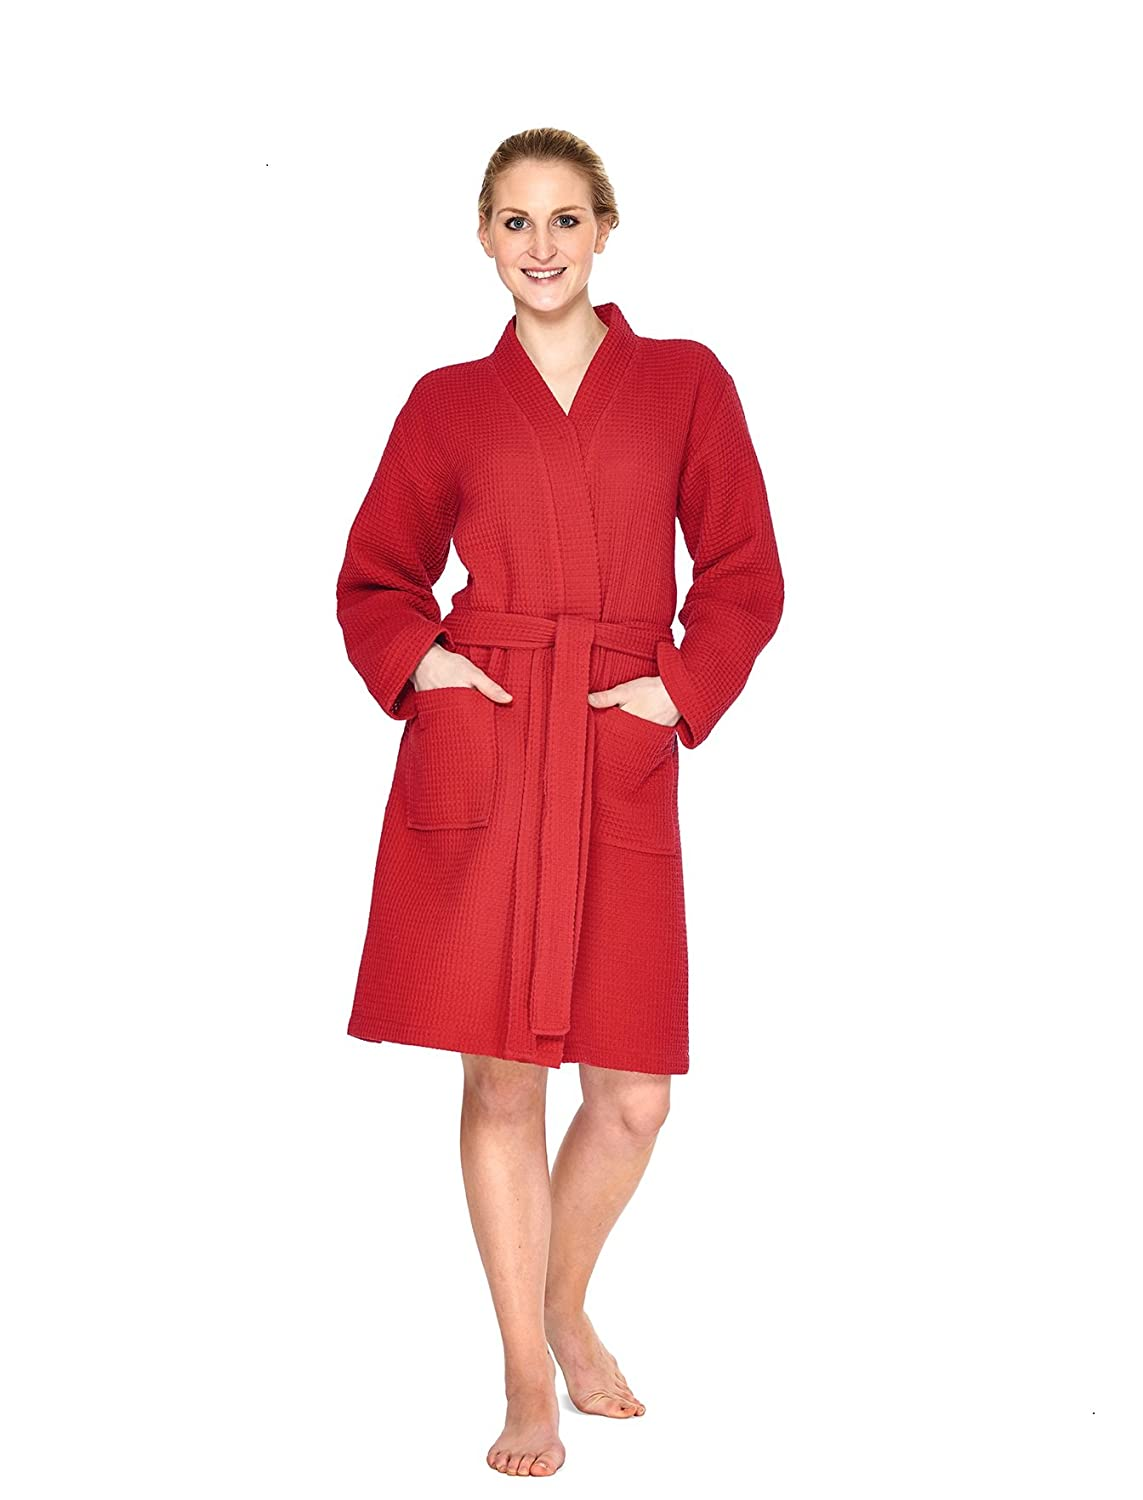 WEWO Women's Fashion Badejacke without hood#3701-in Piquee quality